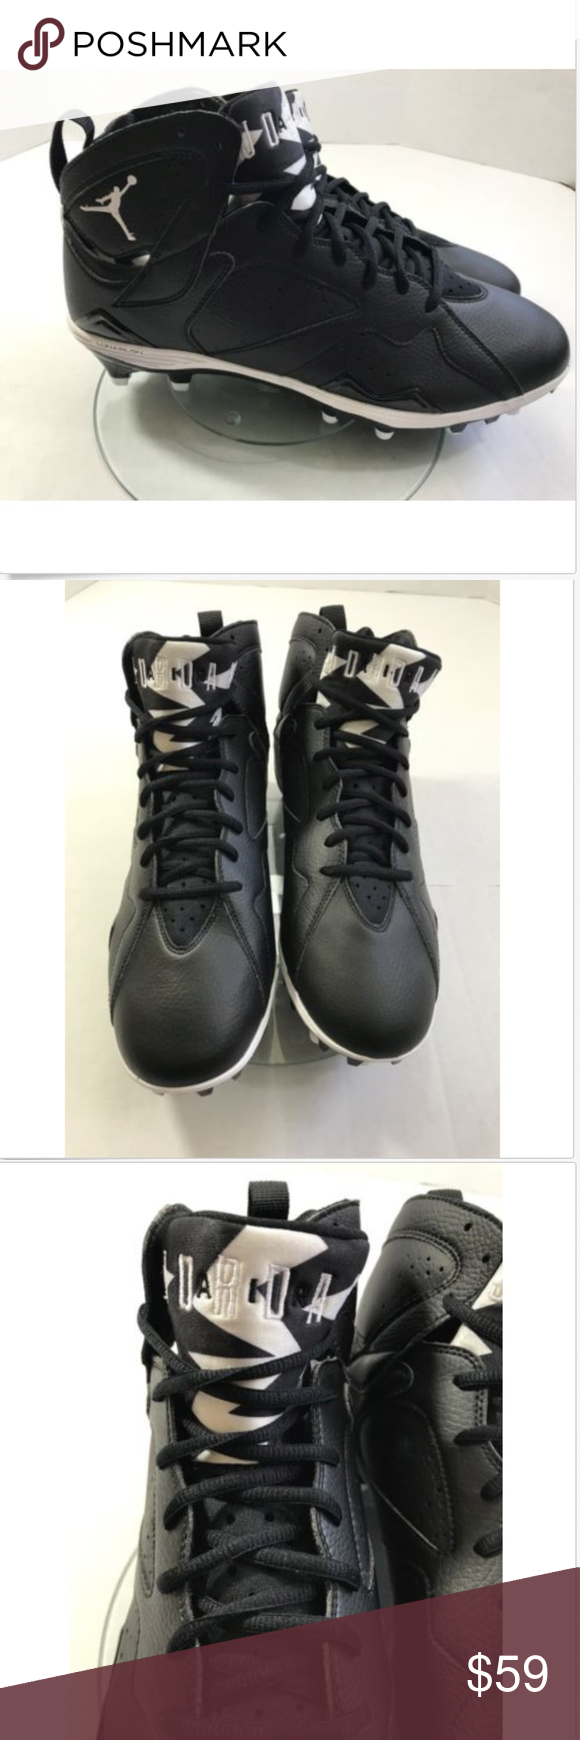 c64c4c19f00 NIKE AIR JORDAN RETRO 7 TD FOOTBALL CLEATS NIKE AIR JORDAN RETRO 7 TD  FOOTBALL CLEATS